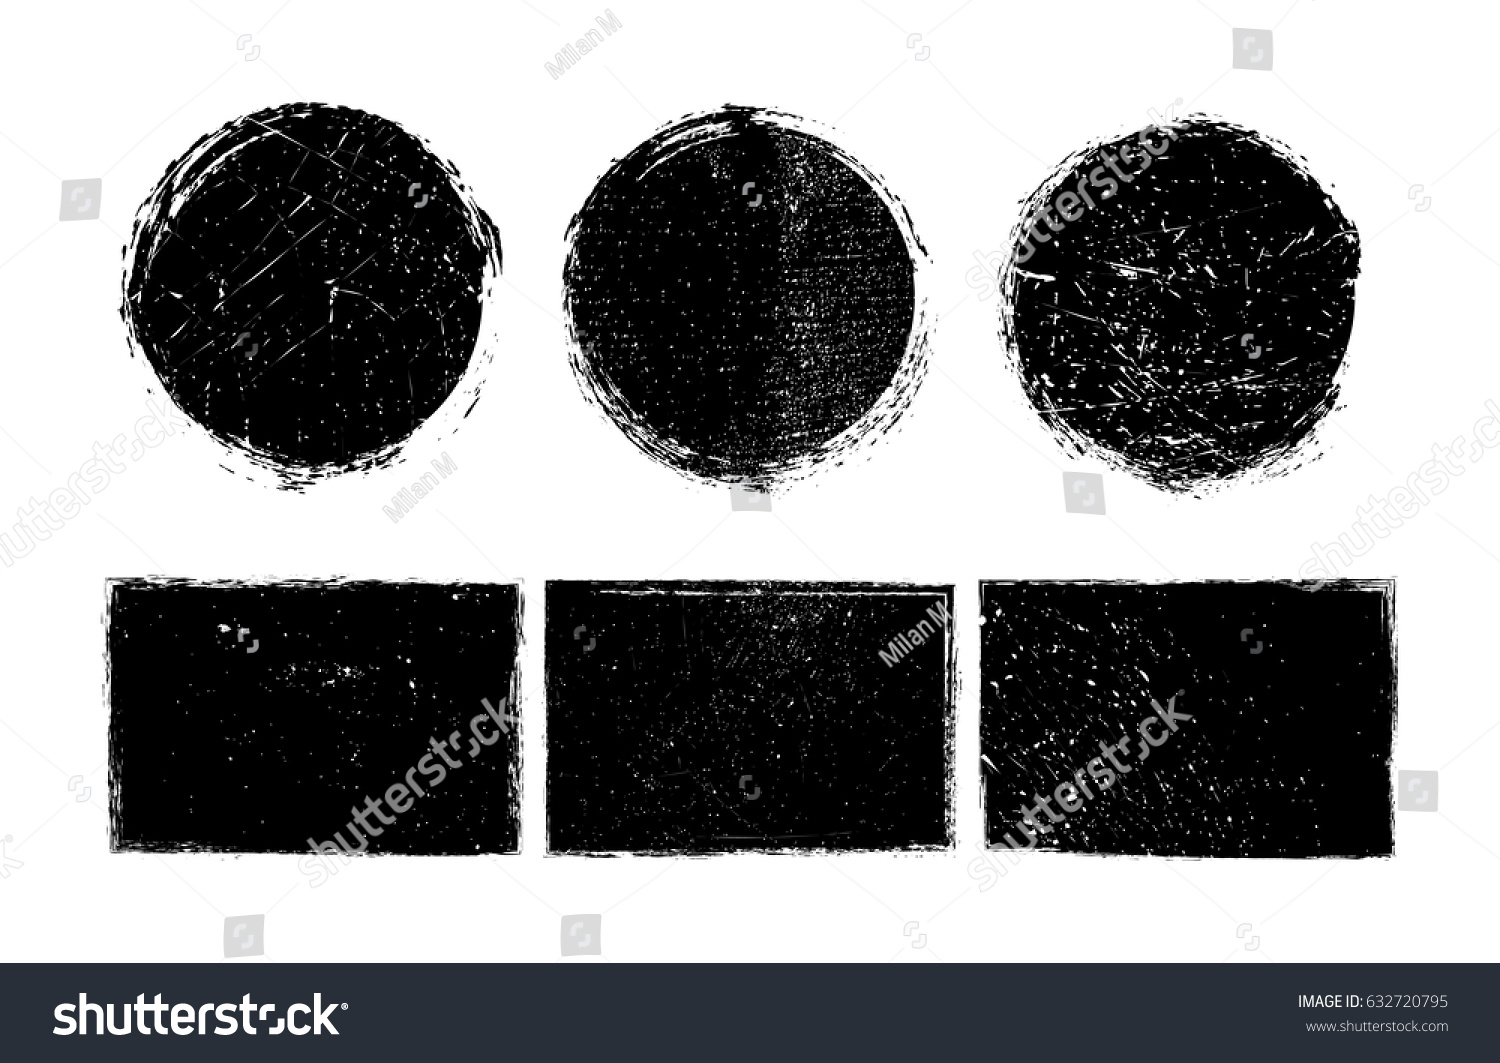 Vector grunge shapes.Grunge design elements. #632720795